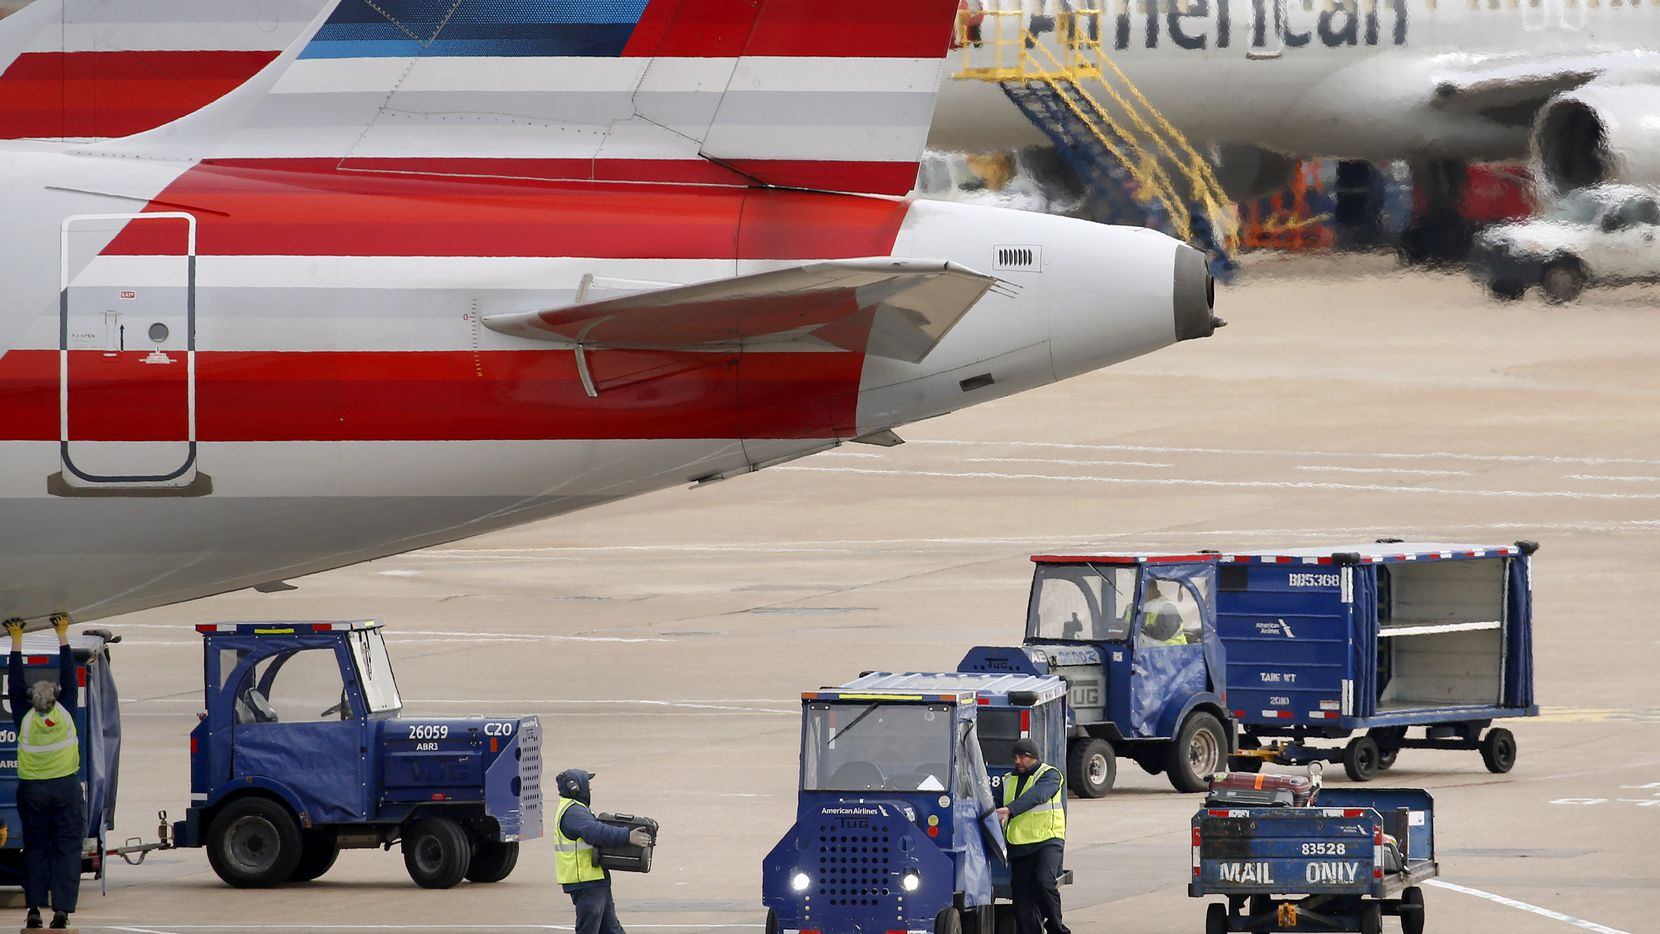 American Airlines crew members move luggage from an aircraft onto carts at Dallas-Fort Worth International Airport's Terminal C, Tuesday, January 21, 2020. (Tom Fox/The Dallas Morning News)